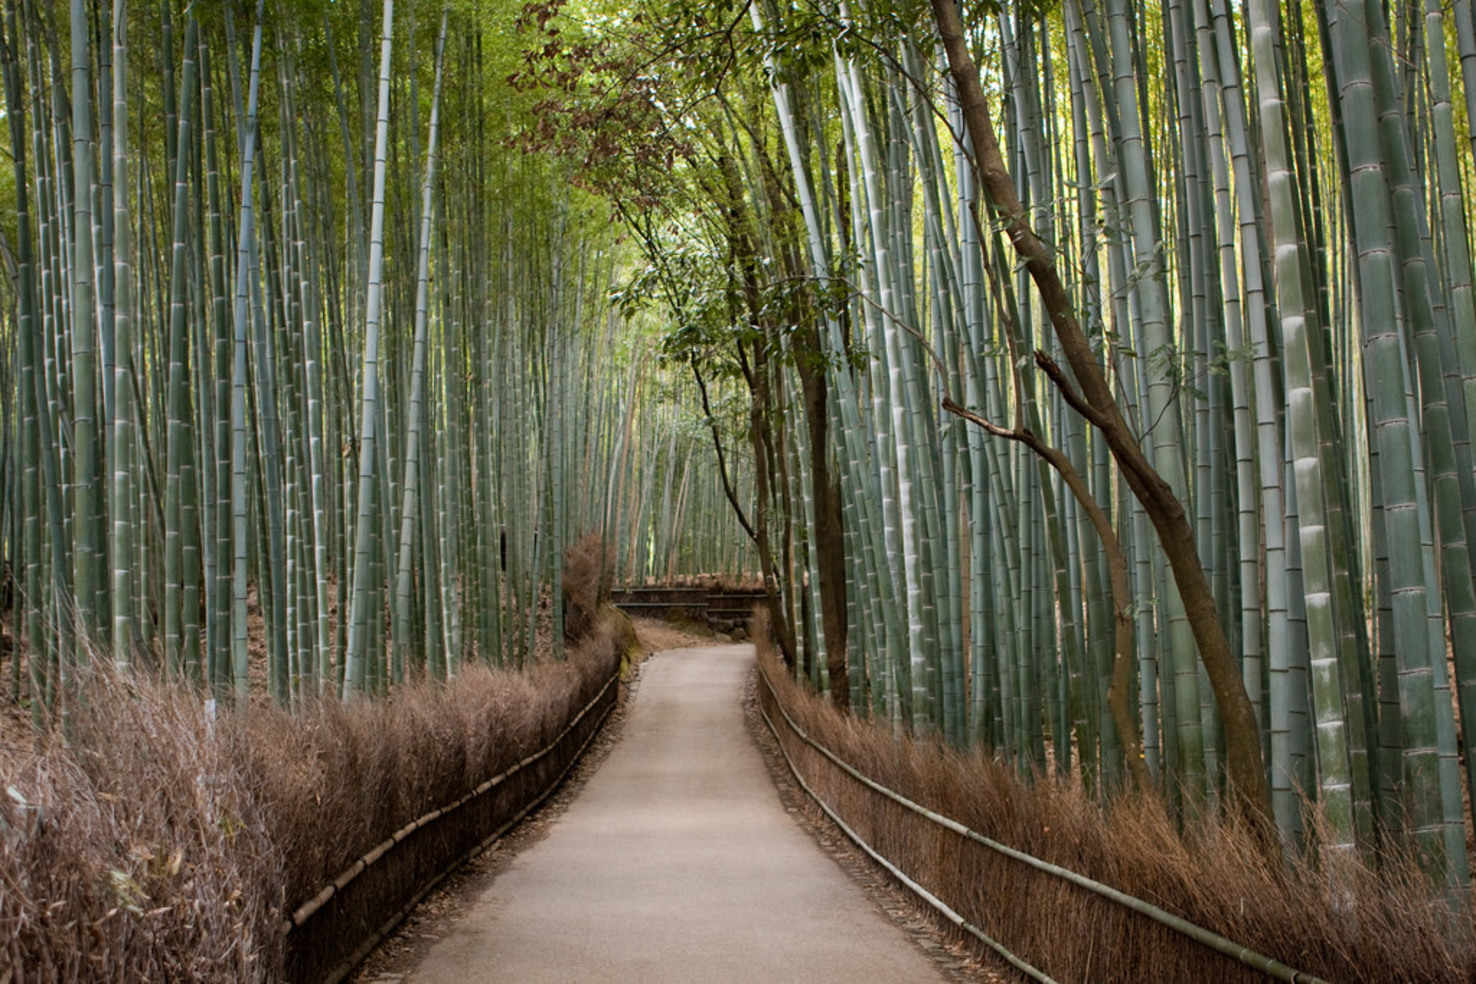 Large kyoto bamboo forest